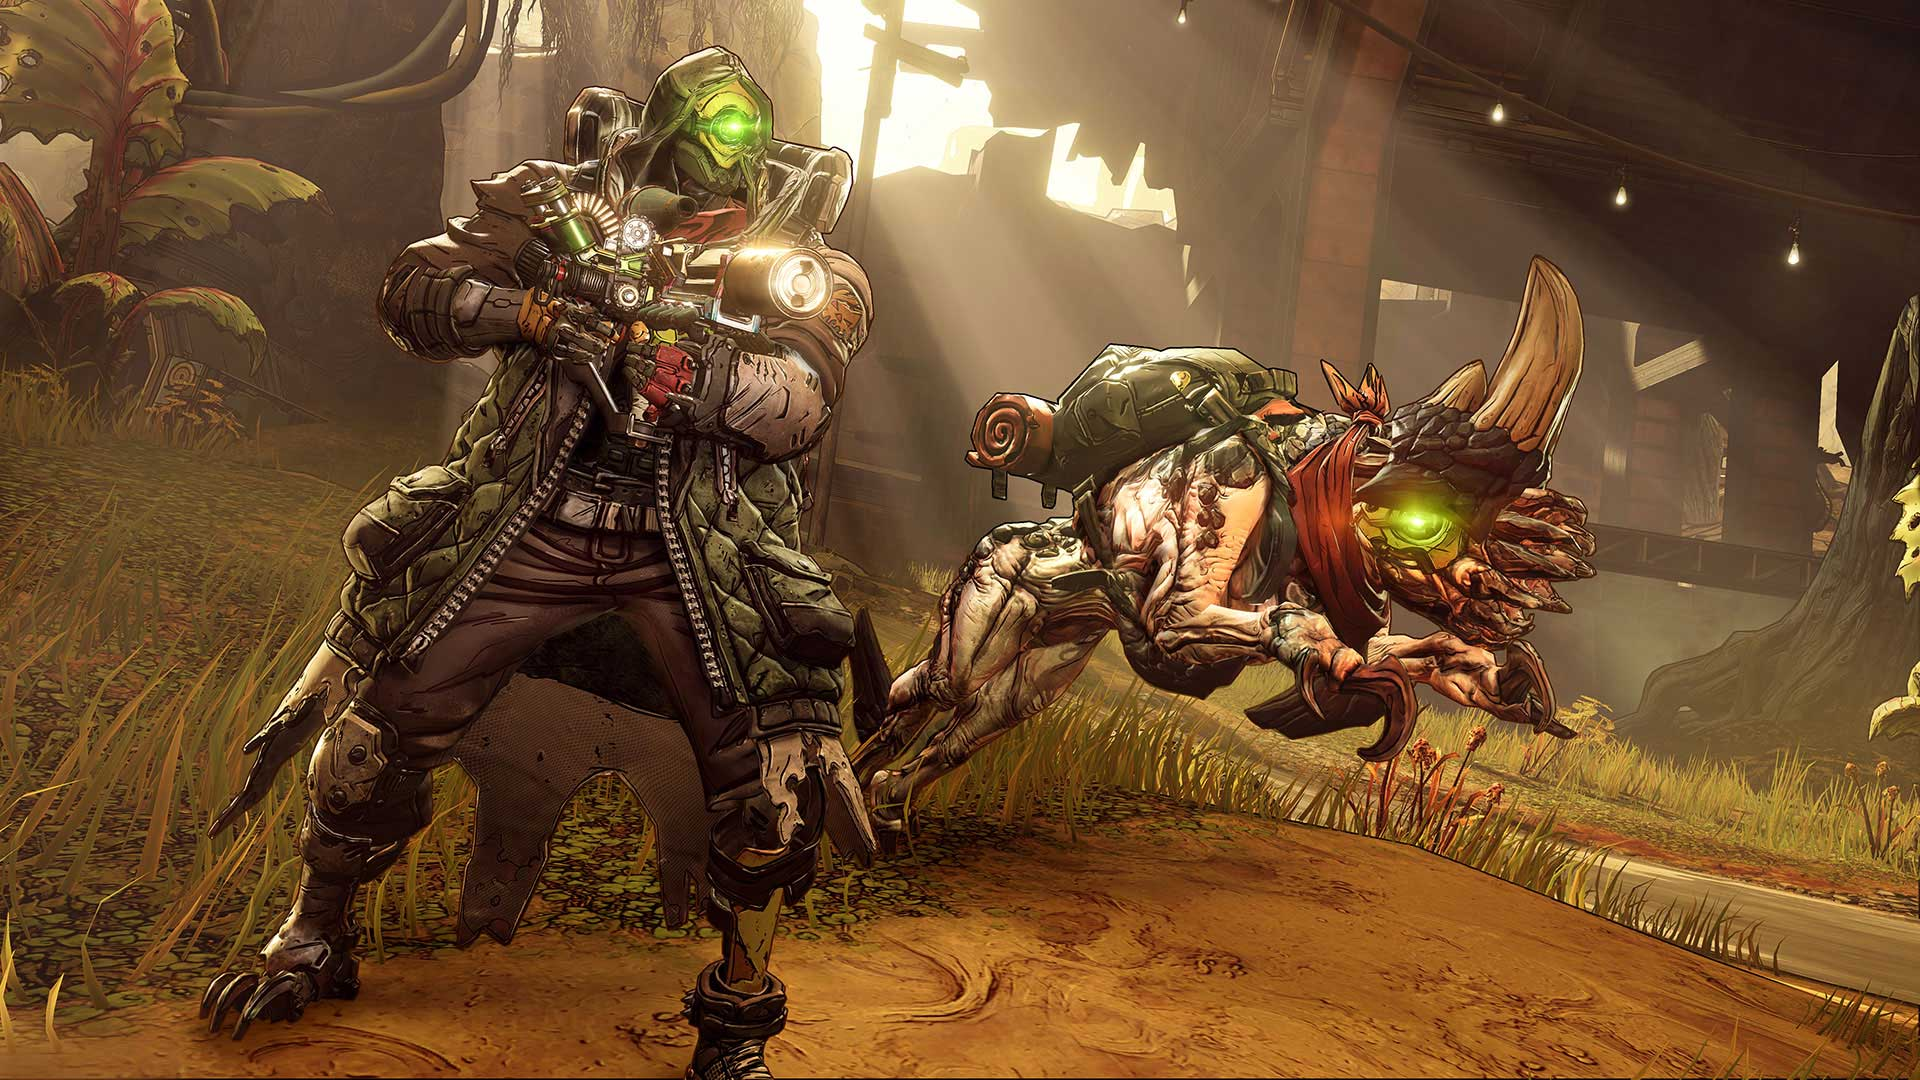 Borderlands 3 character guide: FL4K - The Beastmaster